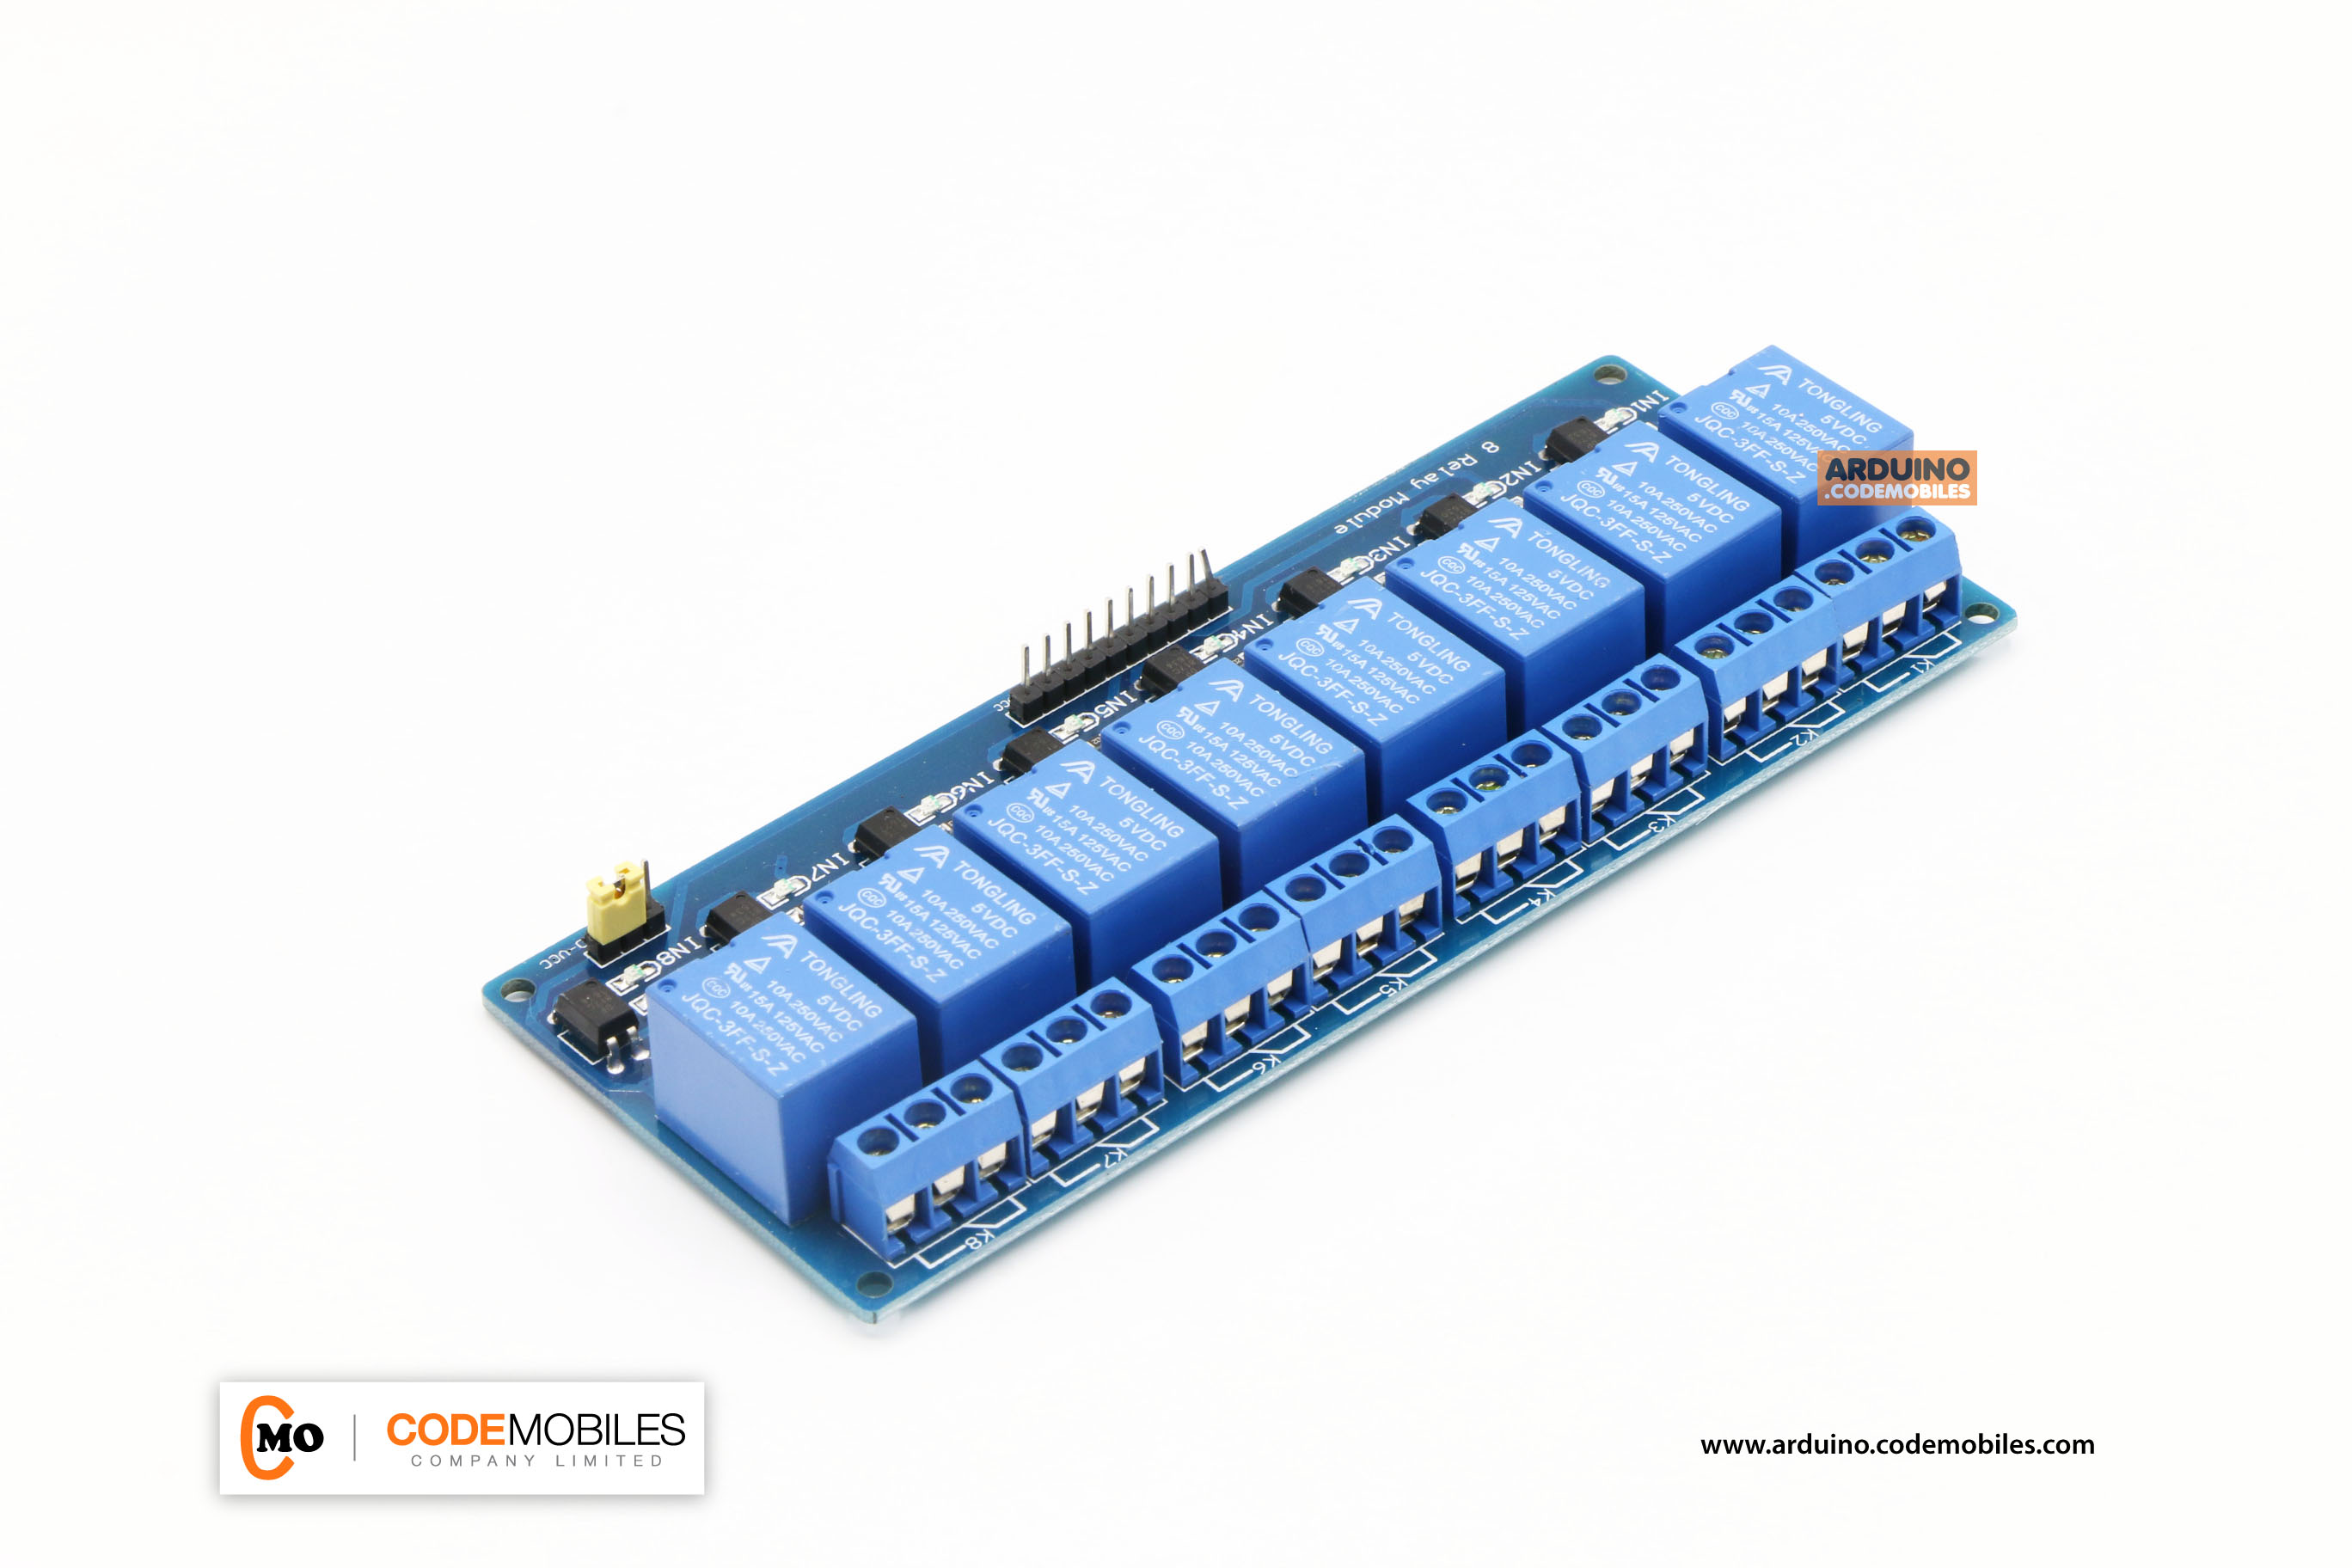 8 Relay Module With Opto Isolation Supports 5V AVR / 51 / PIC Microcontroller PLC Relay